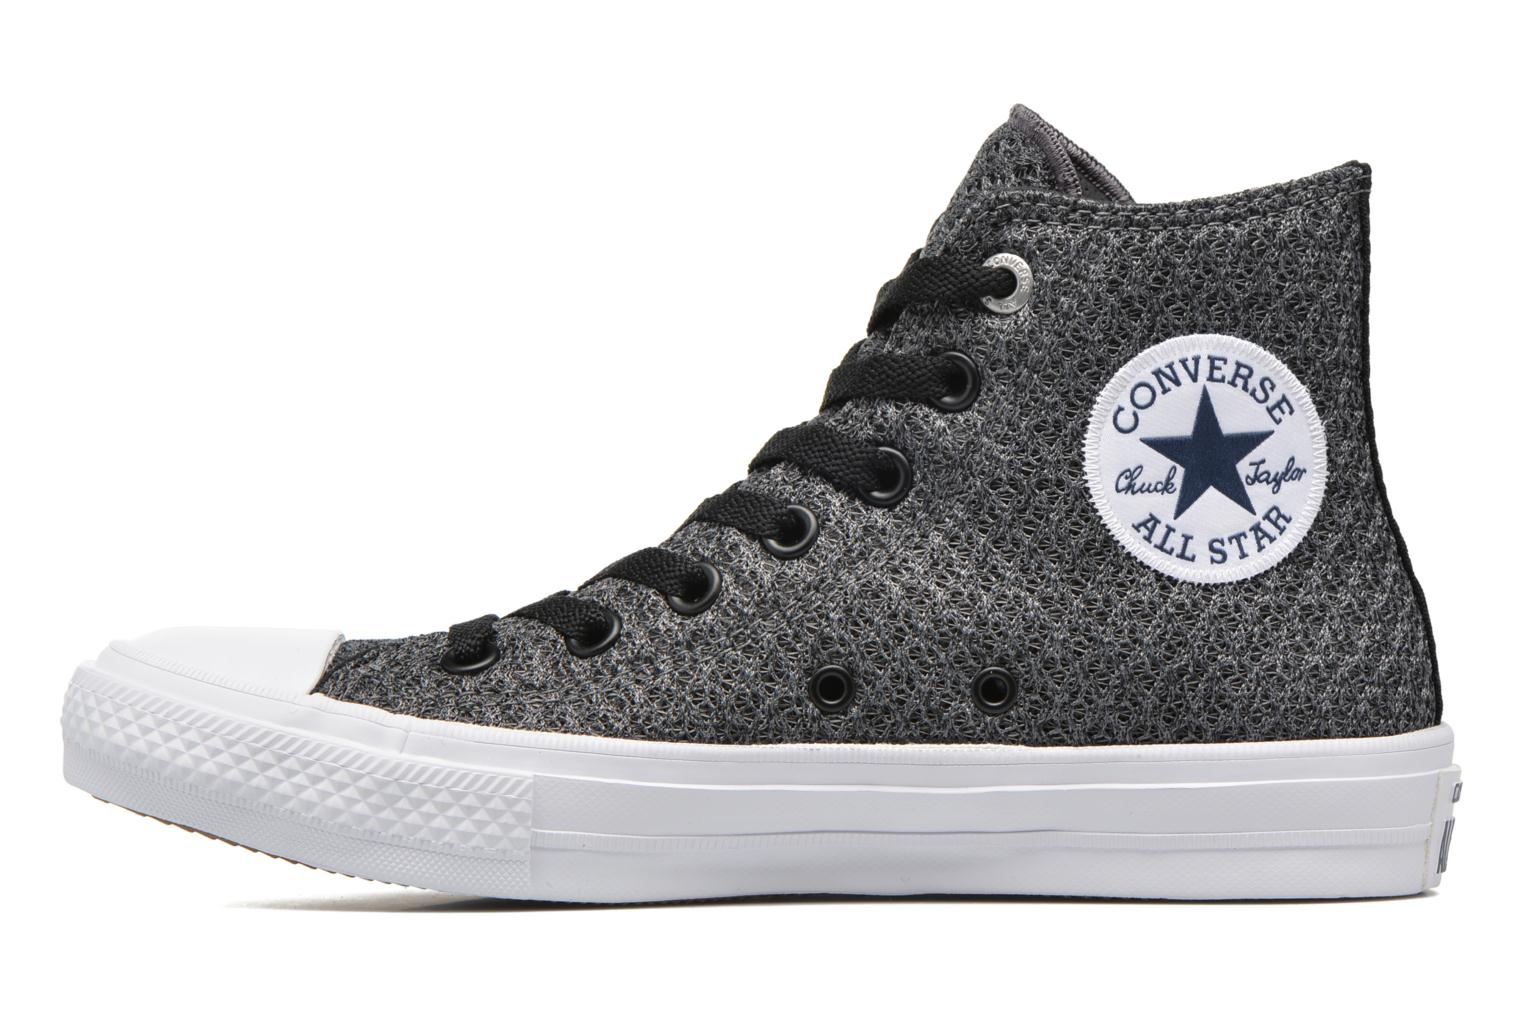 Chuck Taylor All Star II Hi W Thunder/White/Black